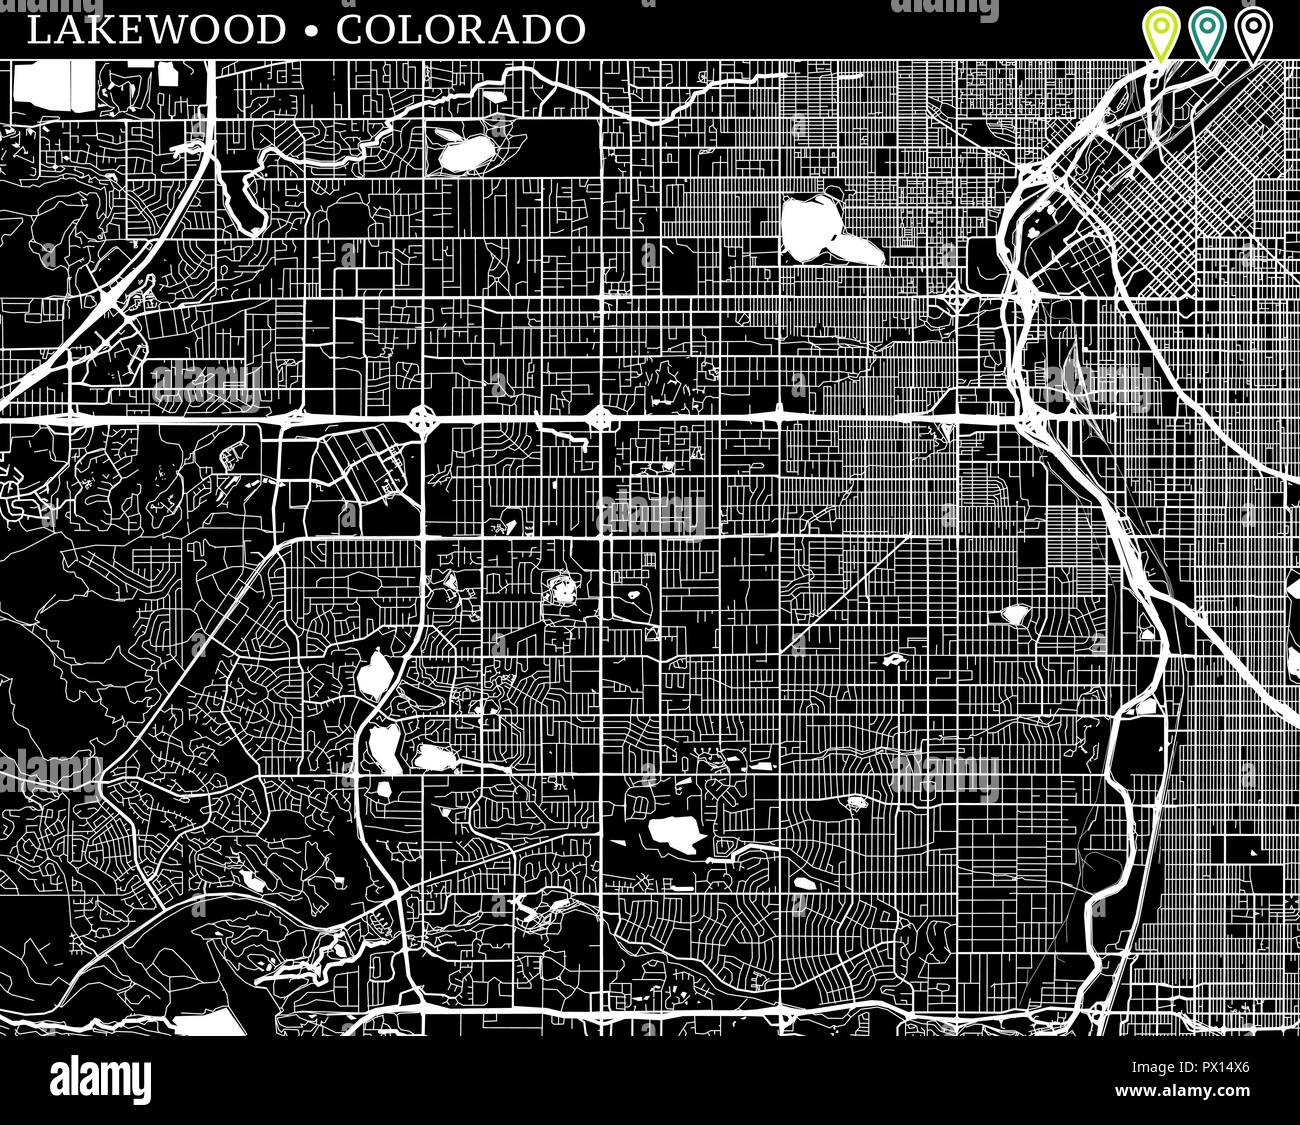 Simple map of Lakewood, Colorado, USA. Black and white version for ...